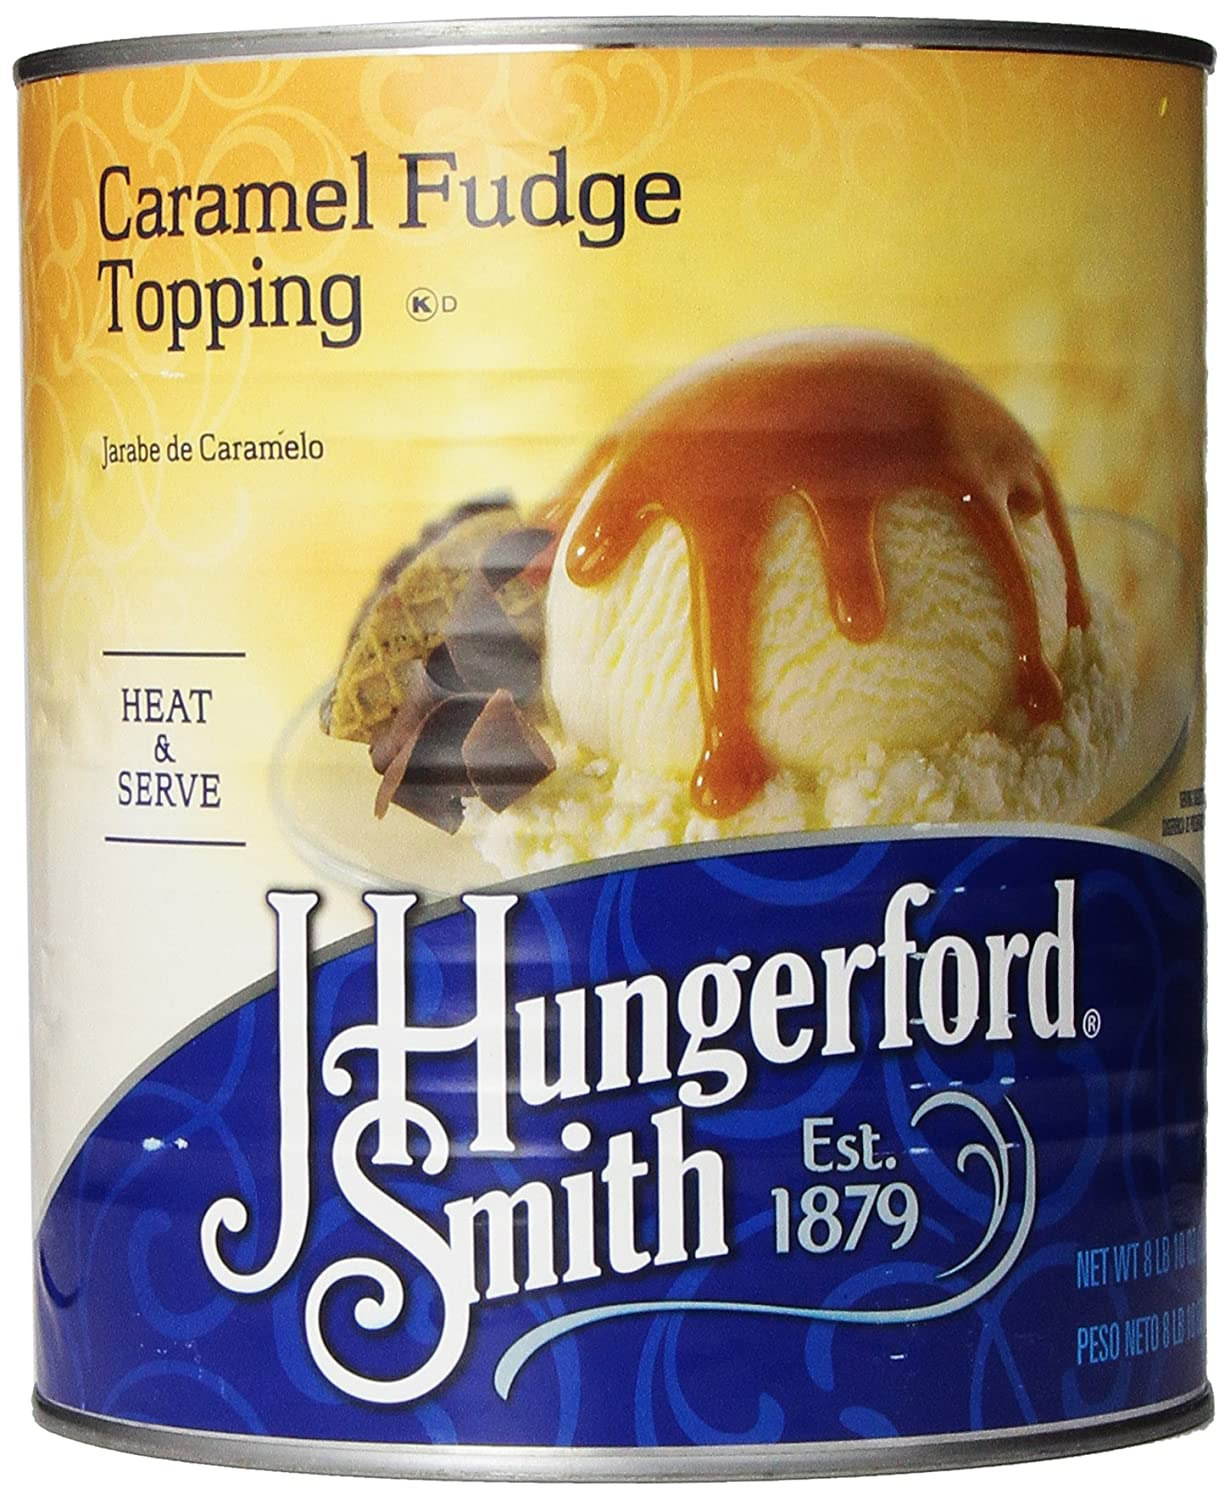 Amazon.com: J. Hungerford Smith Fudge Topping, Caramel, 138 Ounce